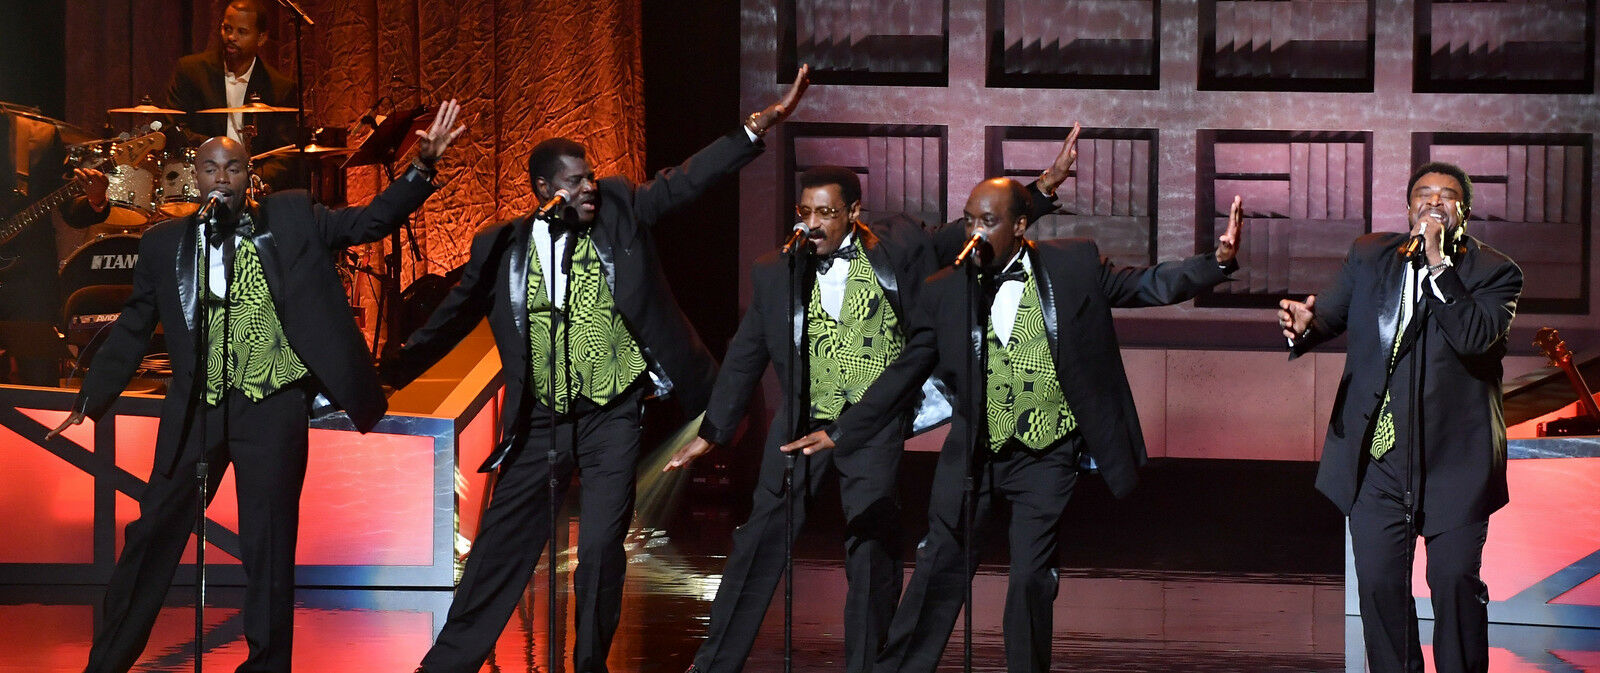 The Temptations Tickets (Rescheduled from Sep 21)